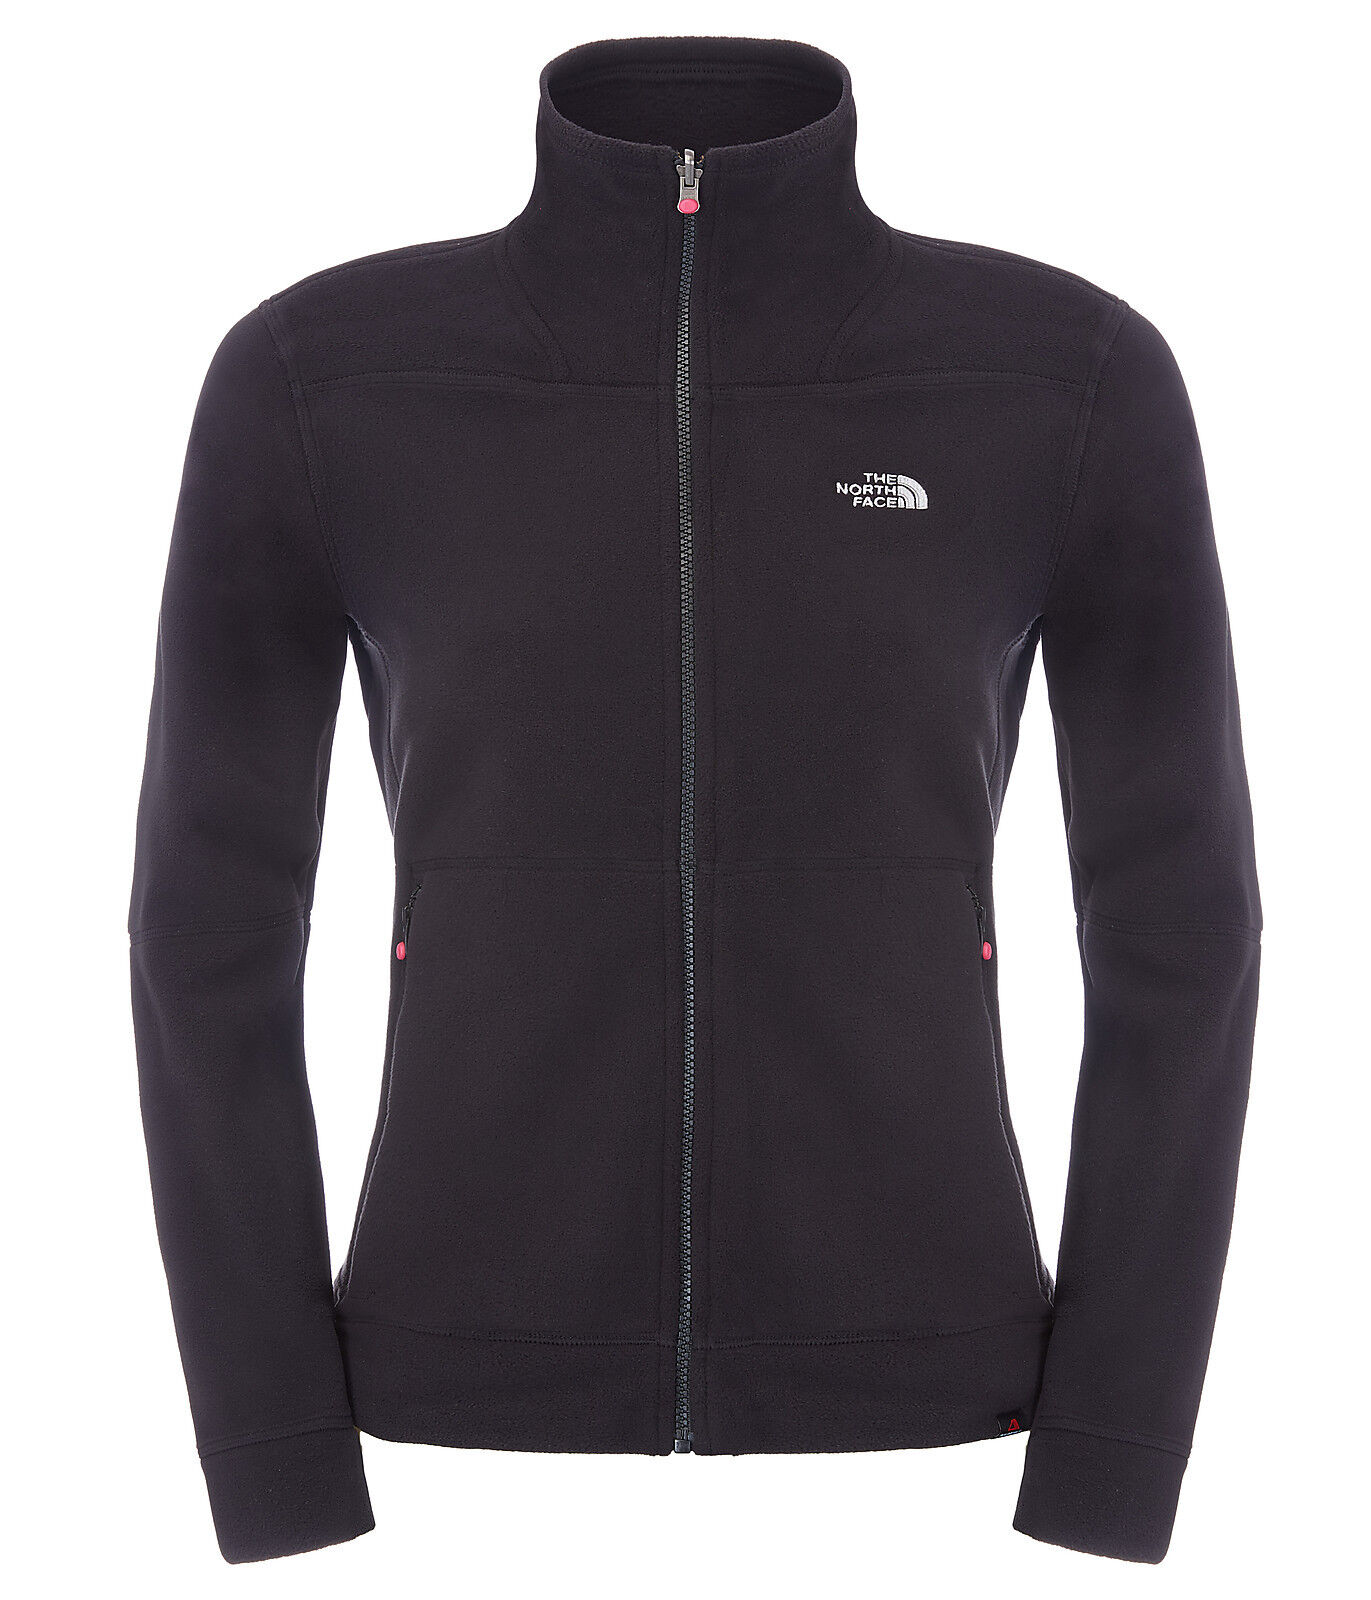 The North Face Donne 200 Ombra Giacca in Pile, Nero